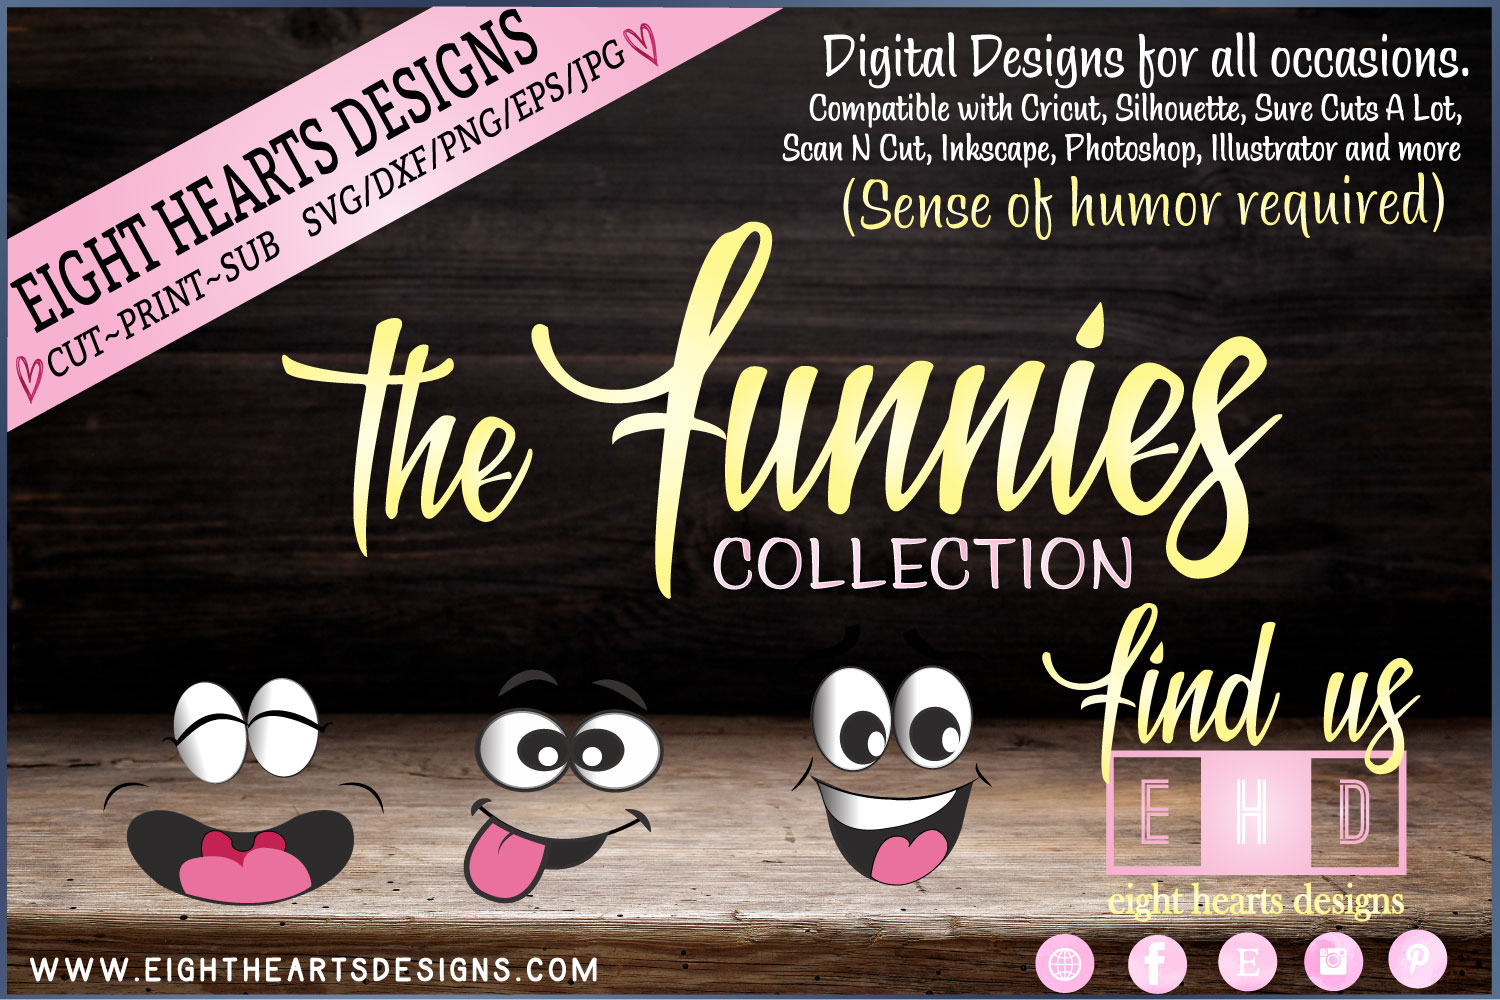 The Funnies Collection of 8 hilarious designs -SVG PNG EPS example image 2